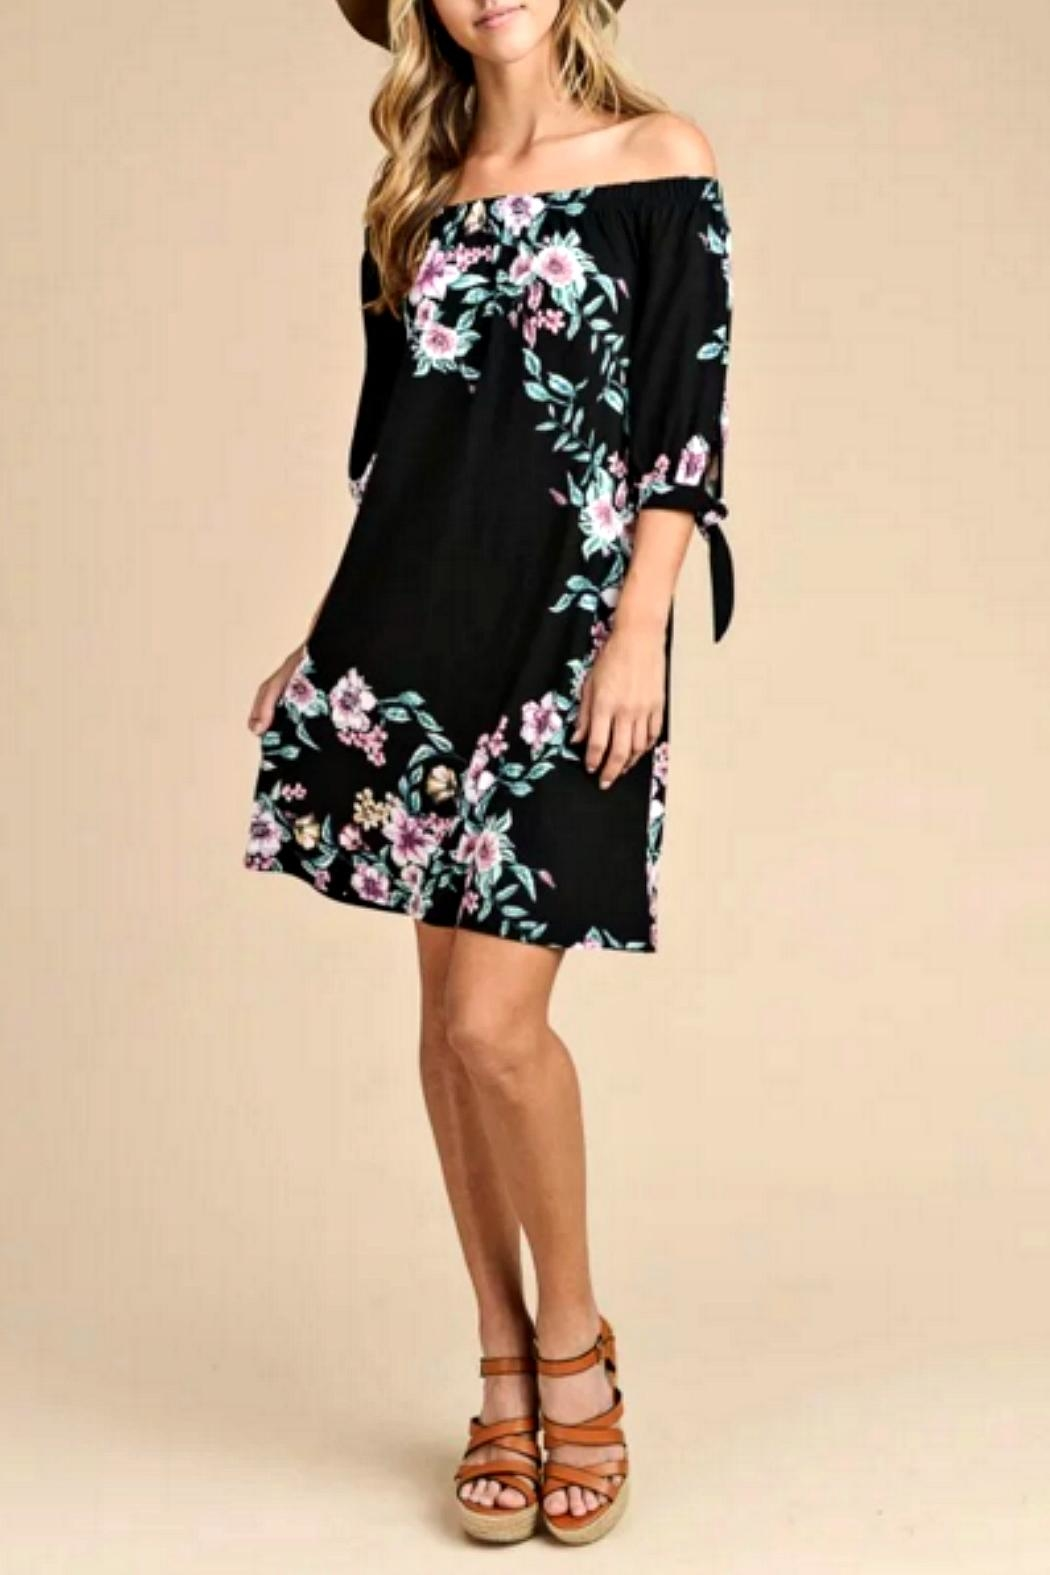 vanilla bay Black Floral Dress - Side Cropped Image